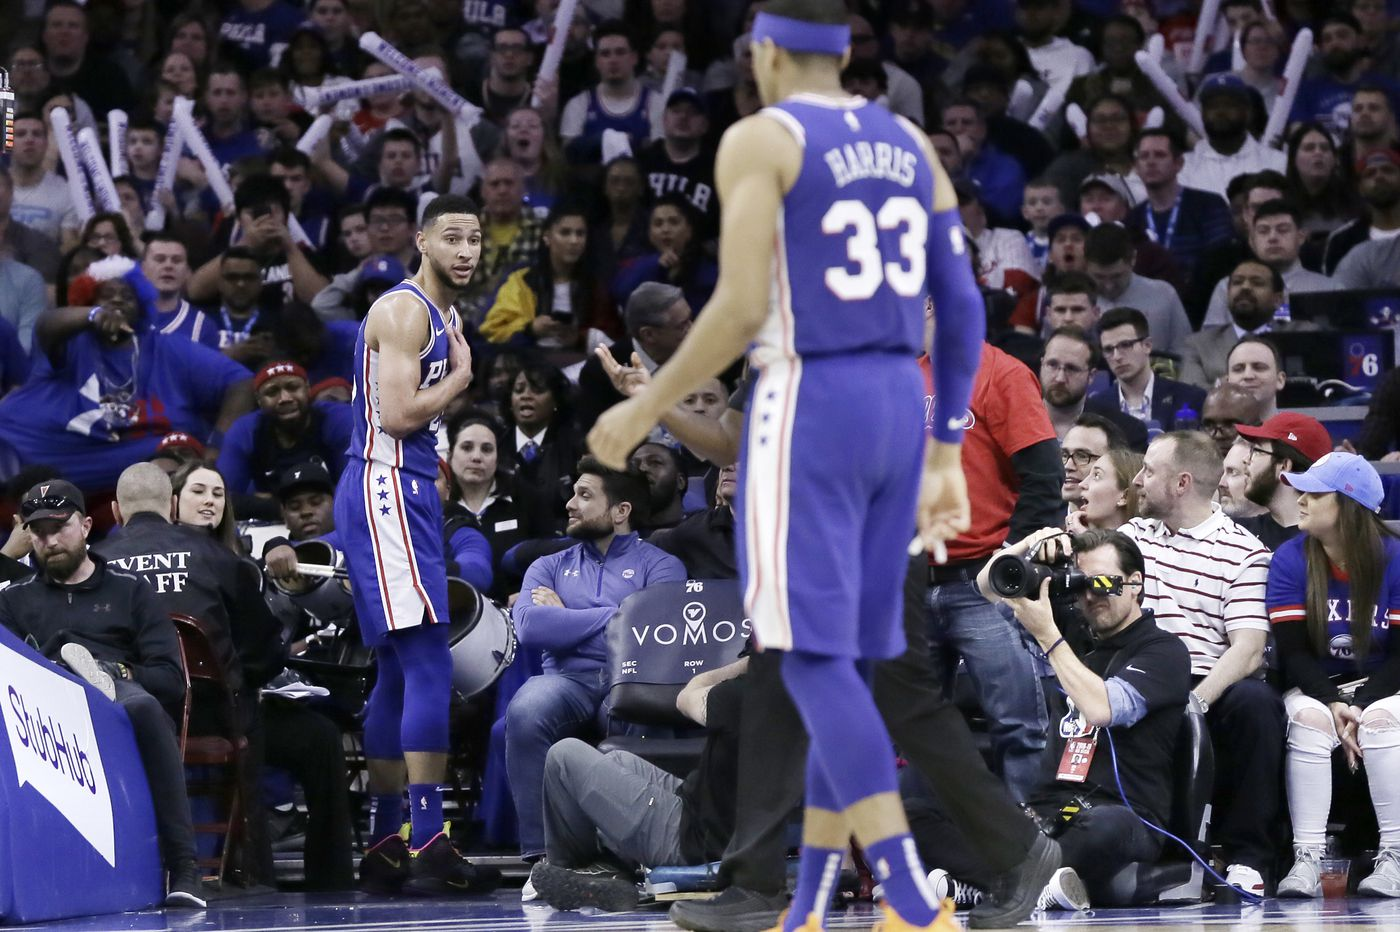 The youthful Nets have pushed aside doubt. Next up: The Sixers.